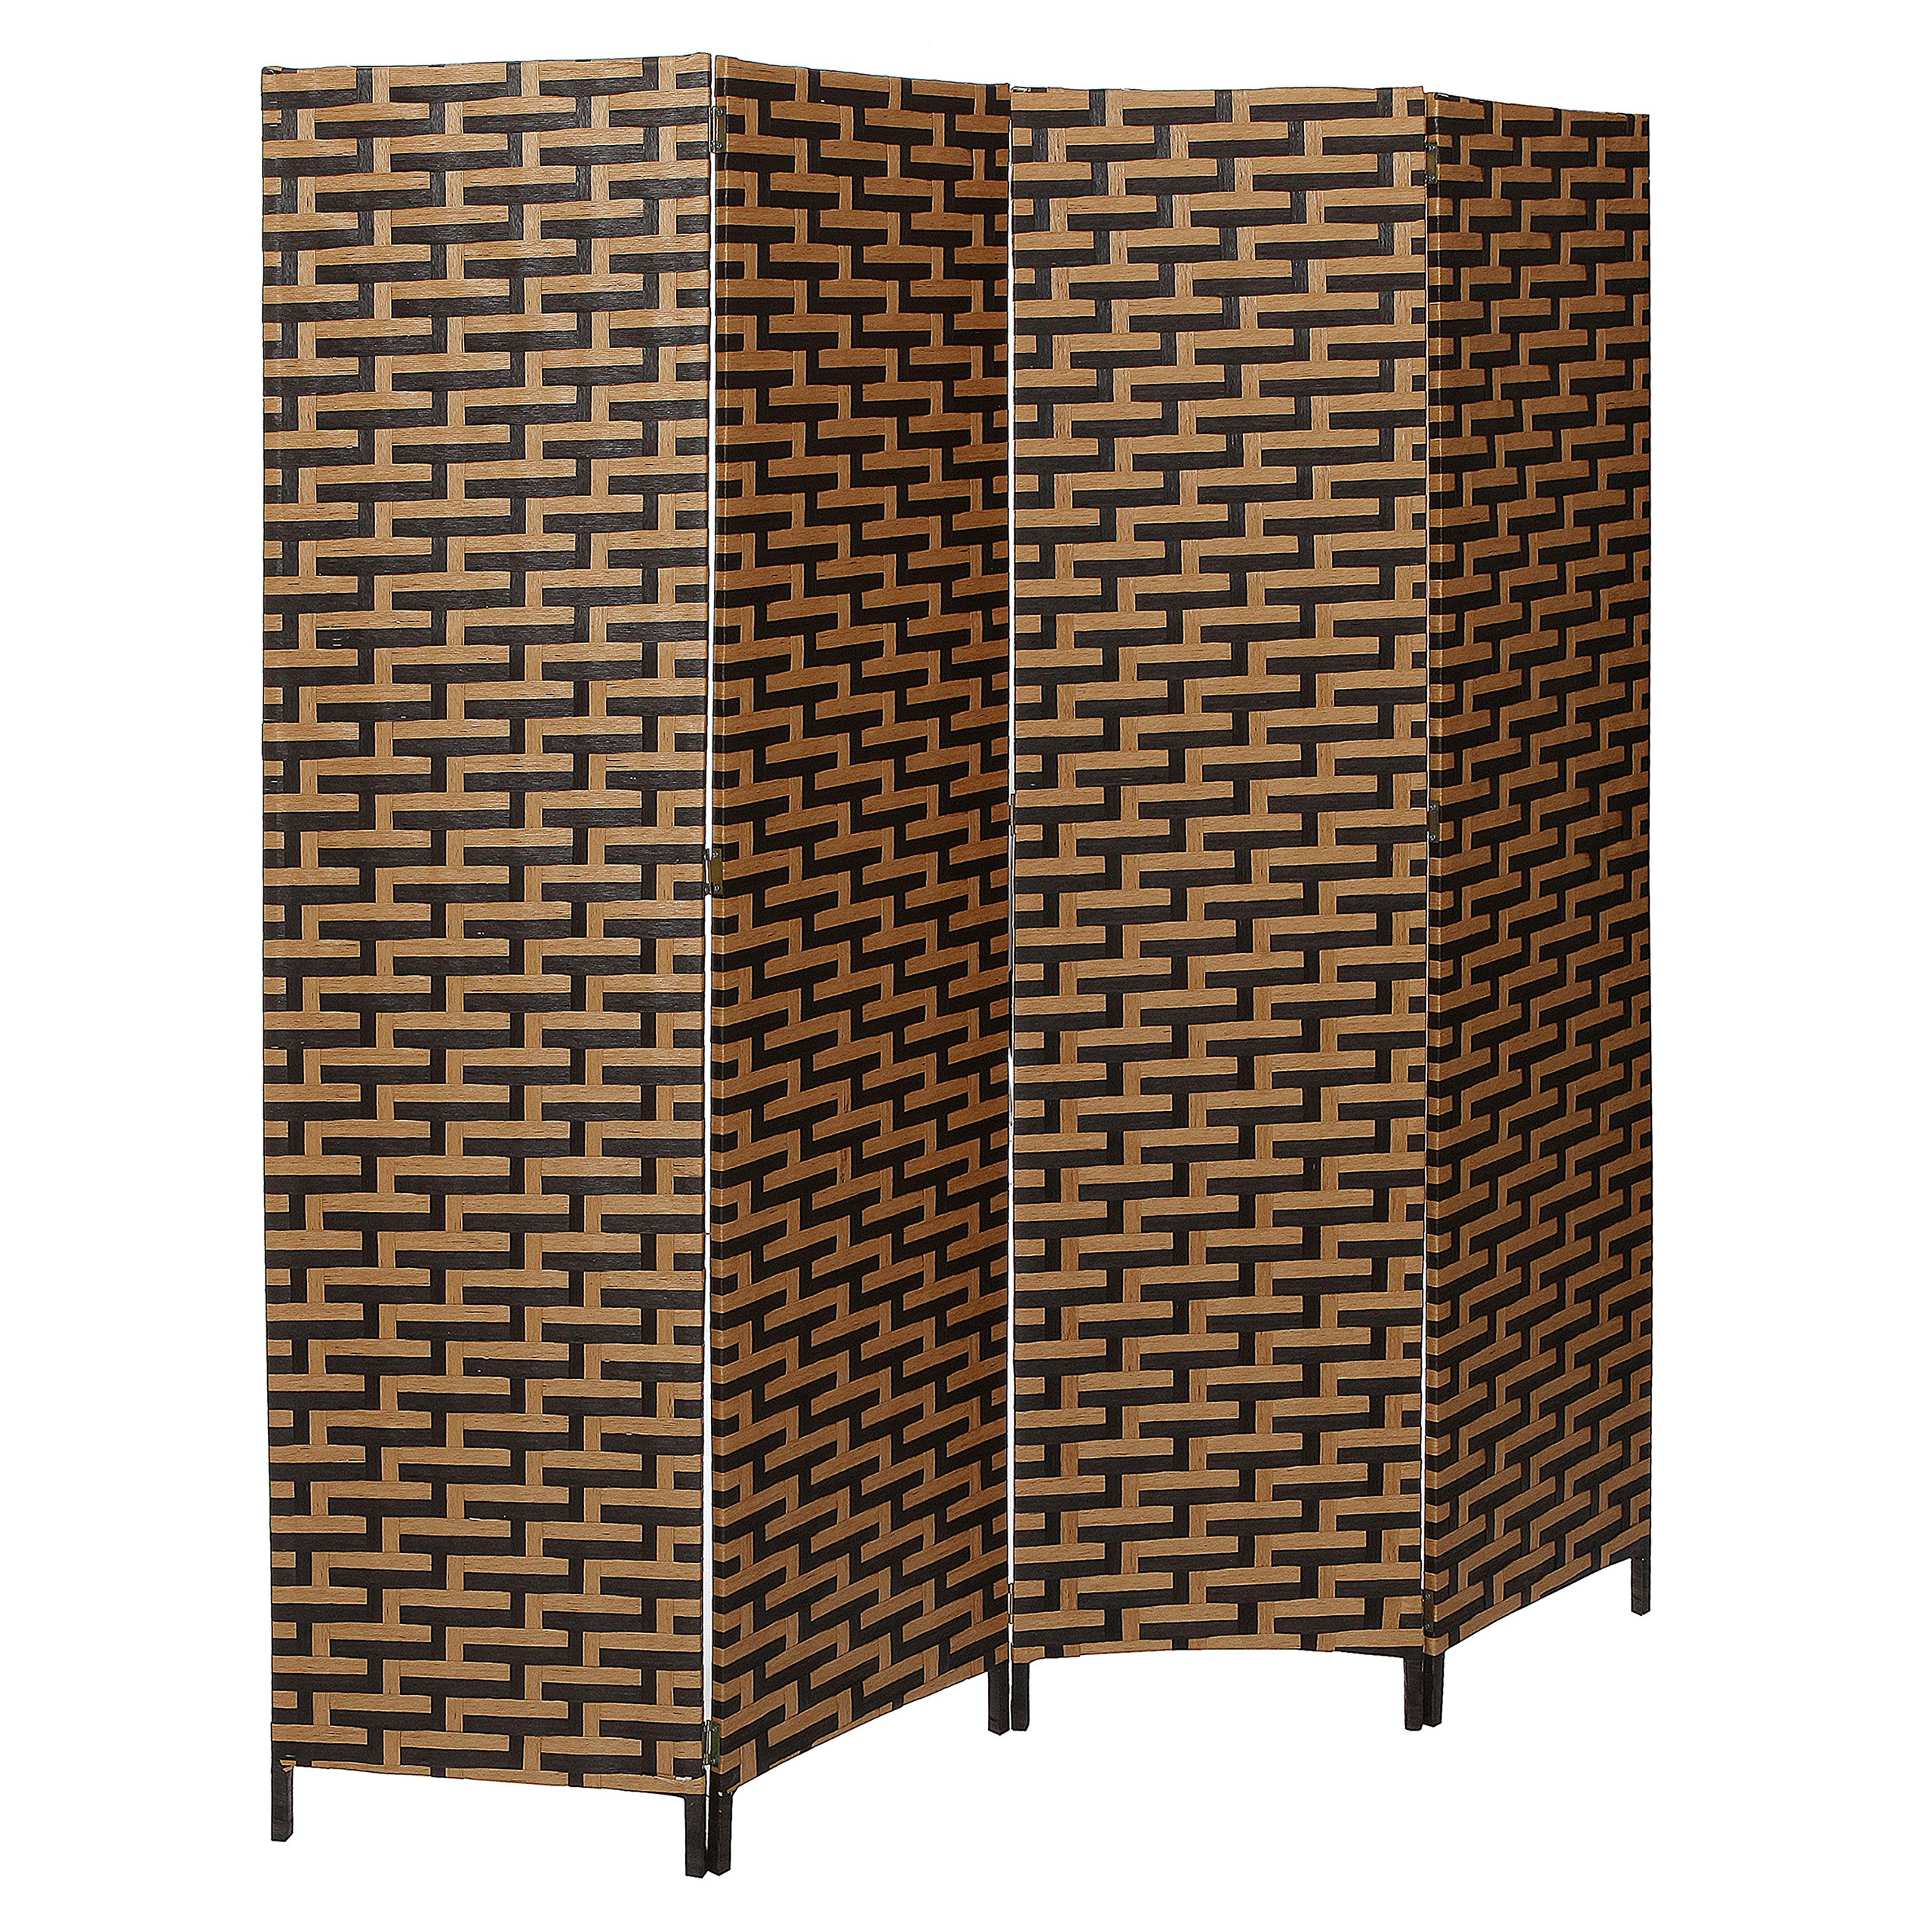 MyGift Decorative Freestanding Black & Brown Woven Design Wood Privacy Room Divider Folding Screen, 4-Panel by MyGift